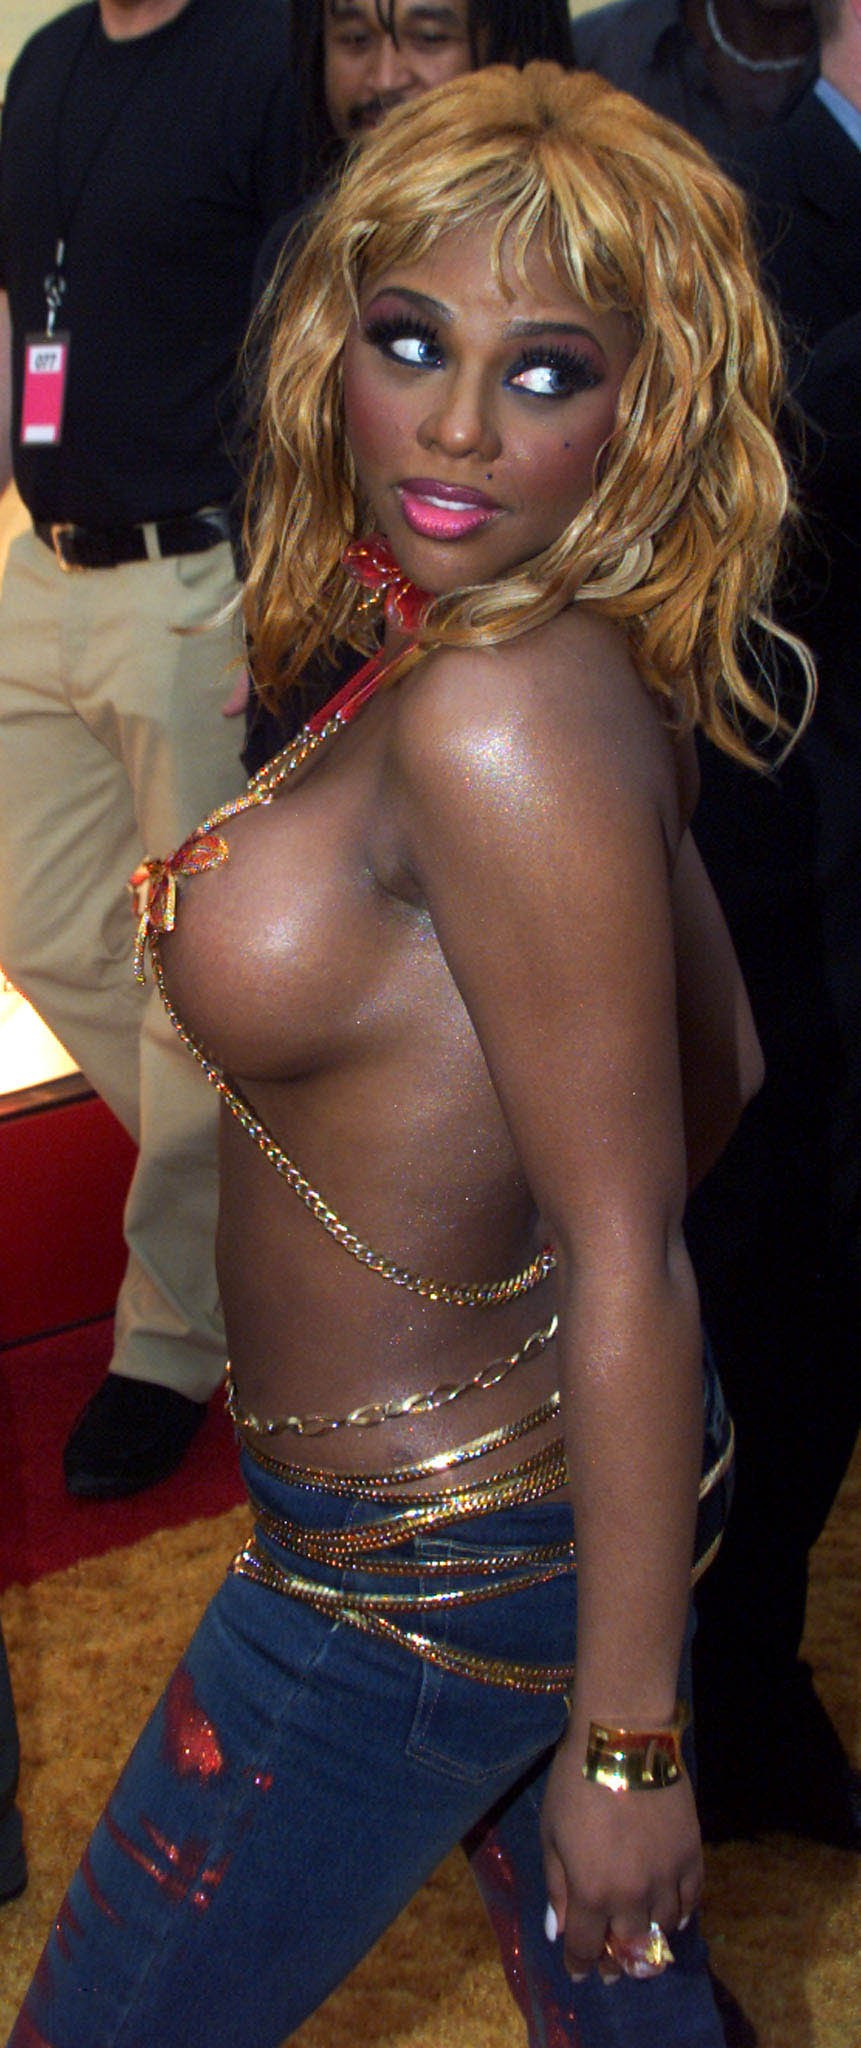 Singer Lil Kim poses as she arrives at the 2001 MTV Movie Awards in Los Angeles June 2, 2001